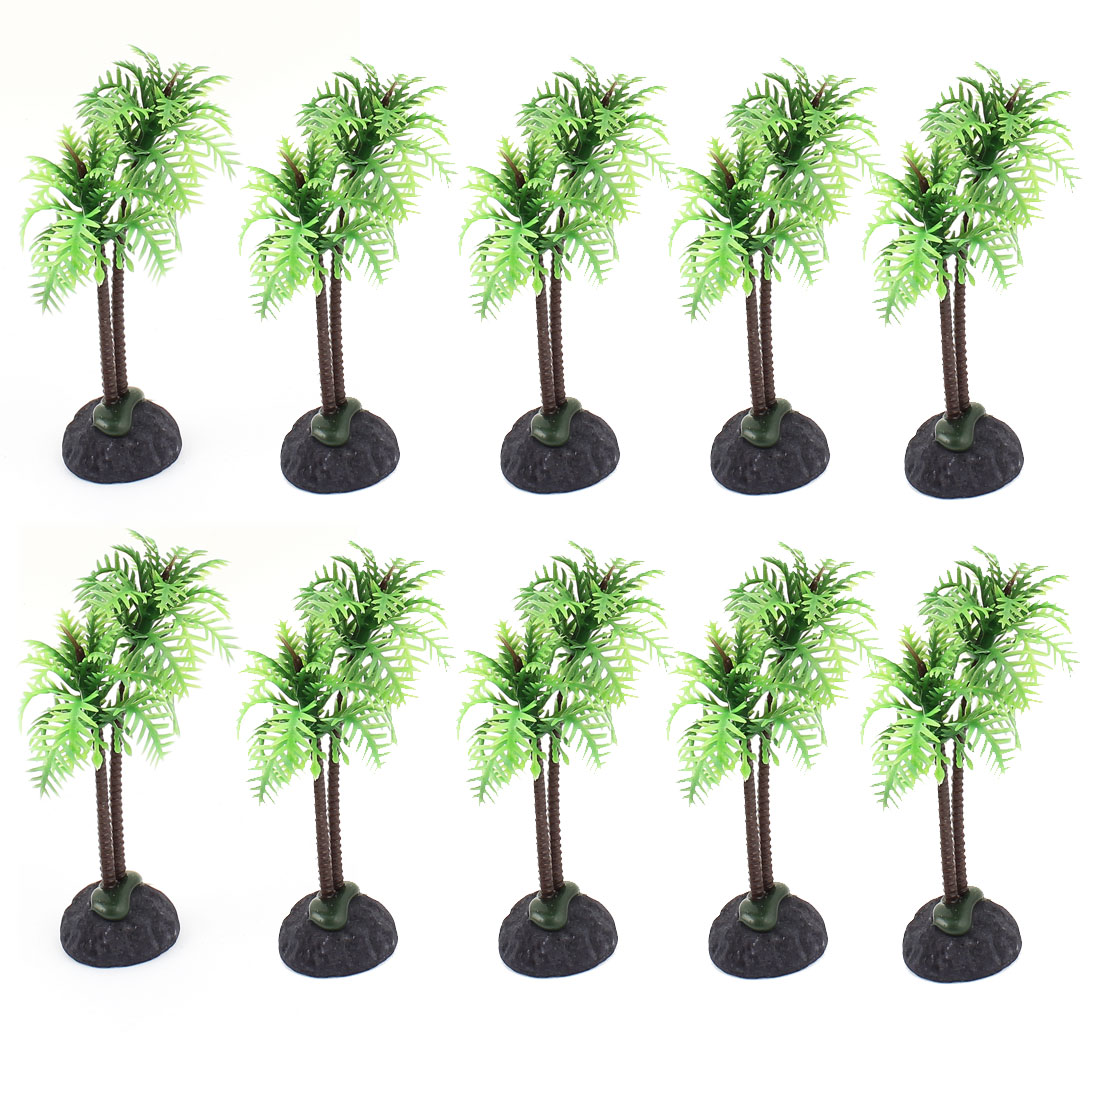 Plastic Coconut Tree Accent Aquatic Plant Fish Tank Aquarium Decor 10PCS